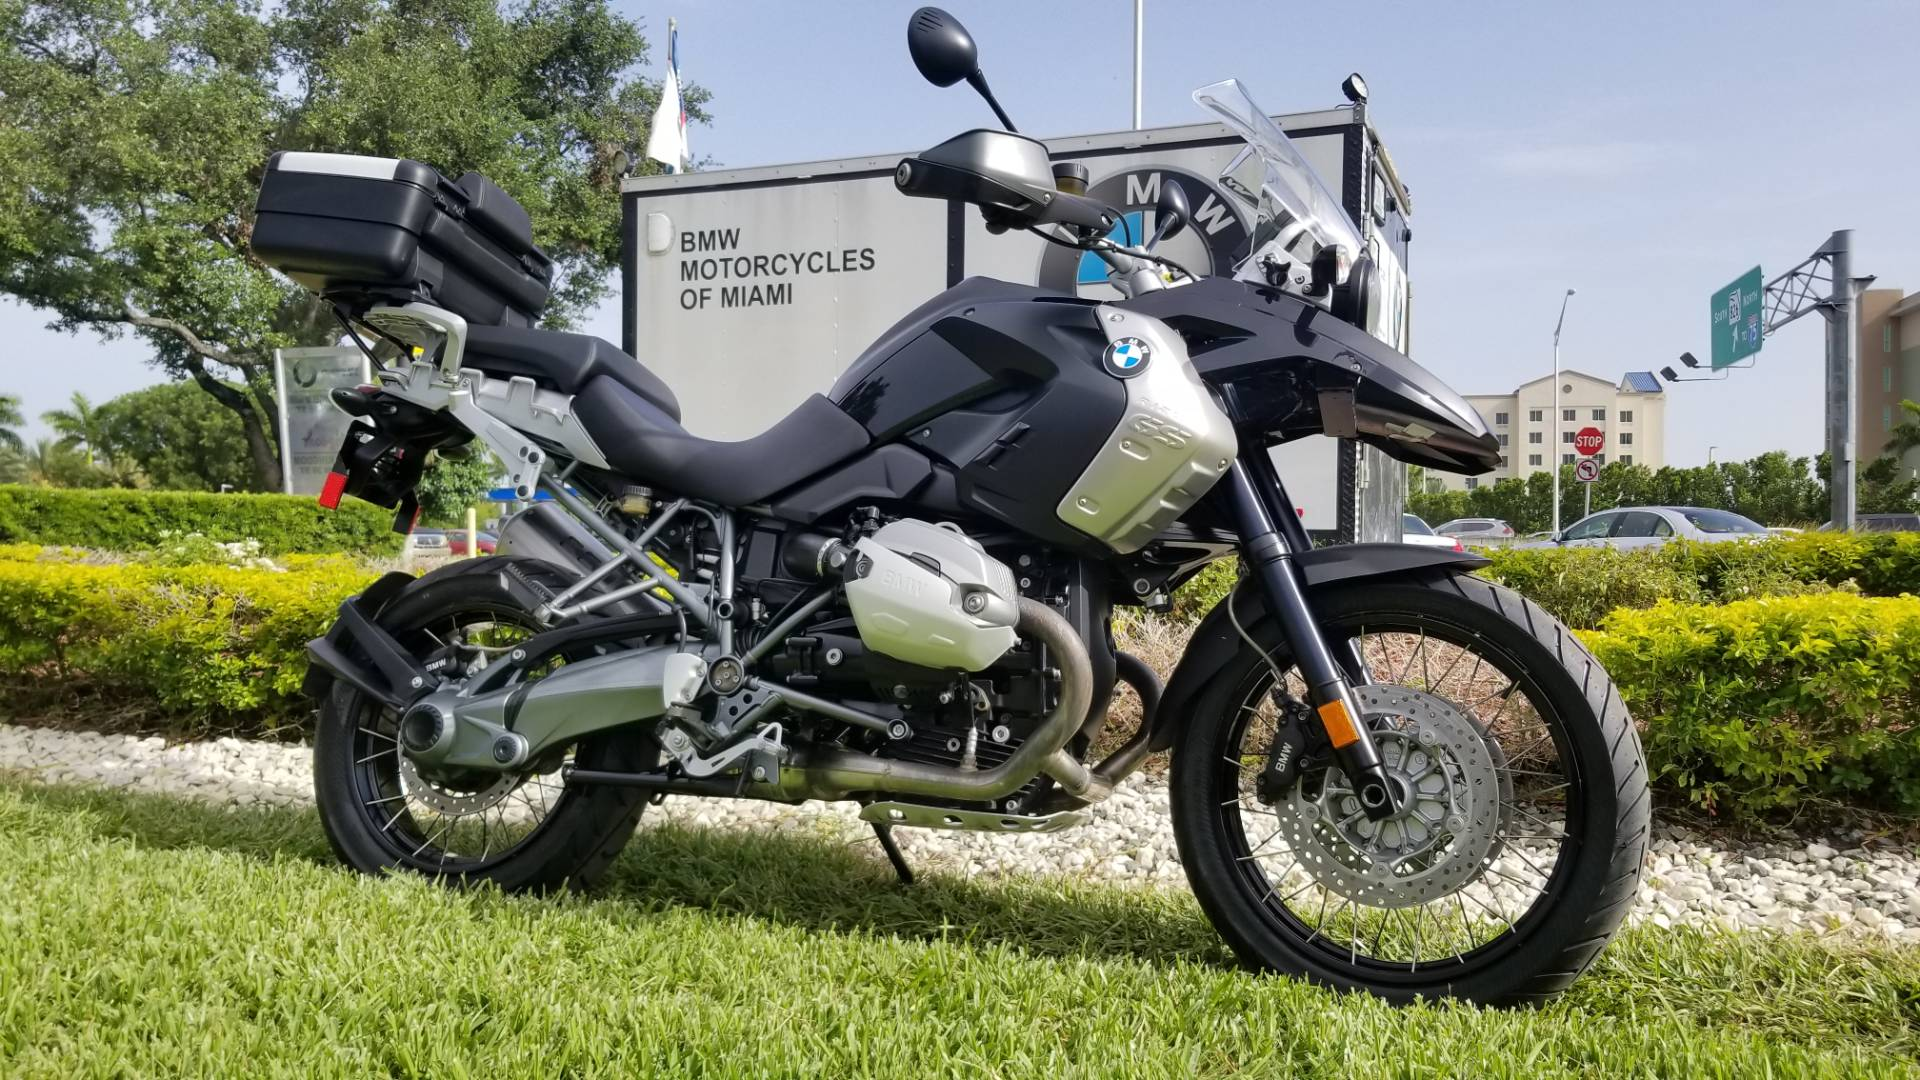 Used 2011 BMW R 1200 GS For Sale, Pre Owned BMW R 1200GS For Sale, Pre-Owned BMW Motorcycle R1200GS, BMW Motorcycle, GS, BMW - Photo 18